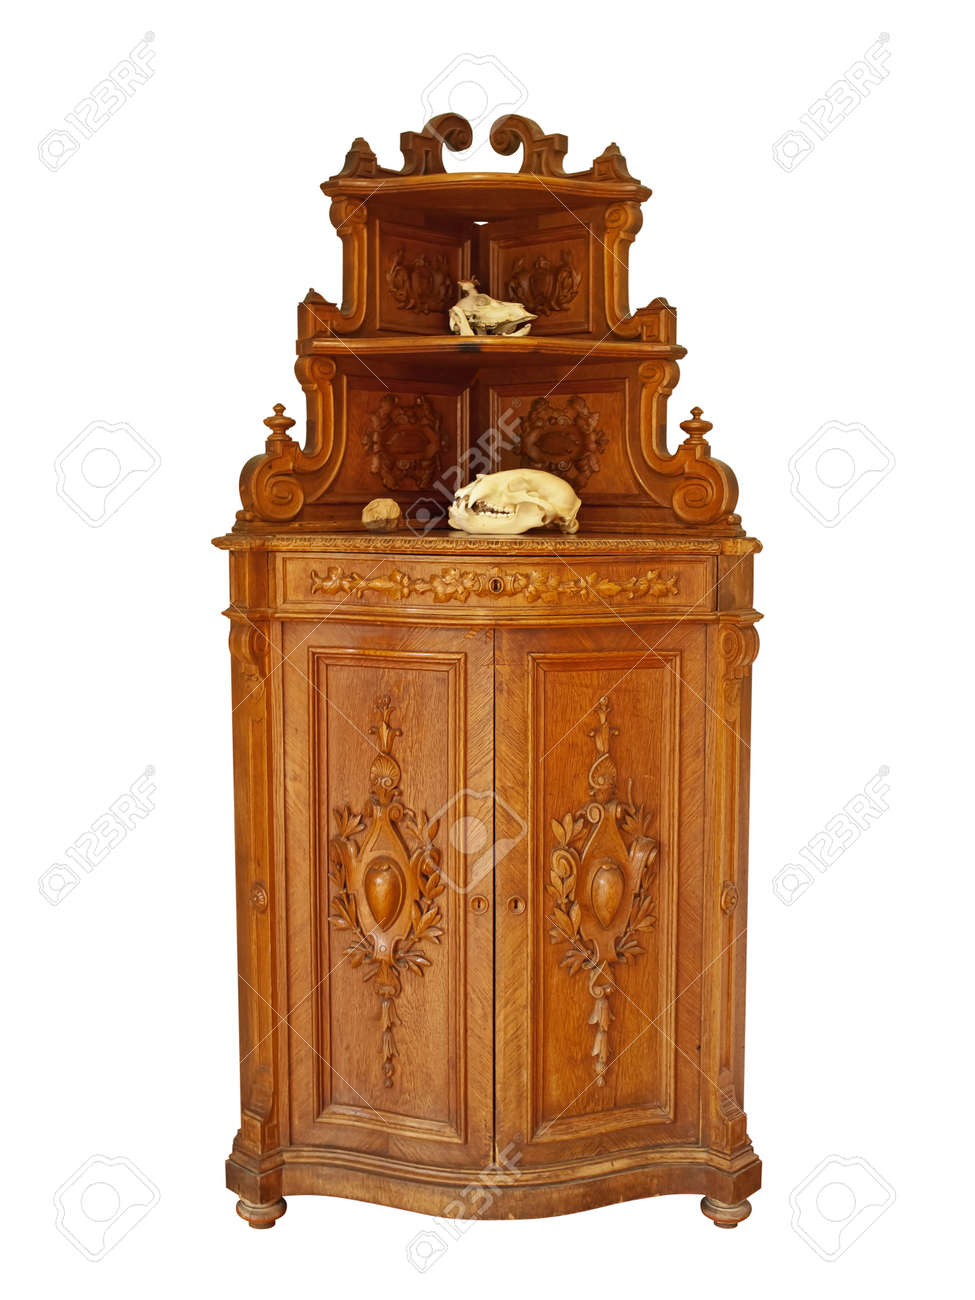 Old cupboard with animals skulls against white background Stock Photo - 10418392